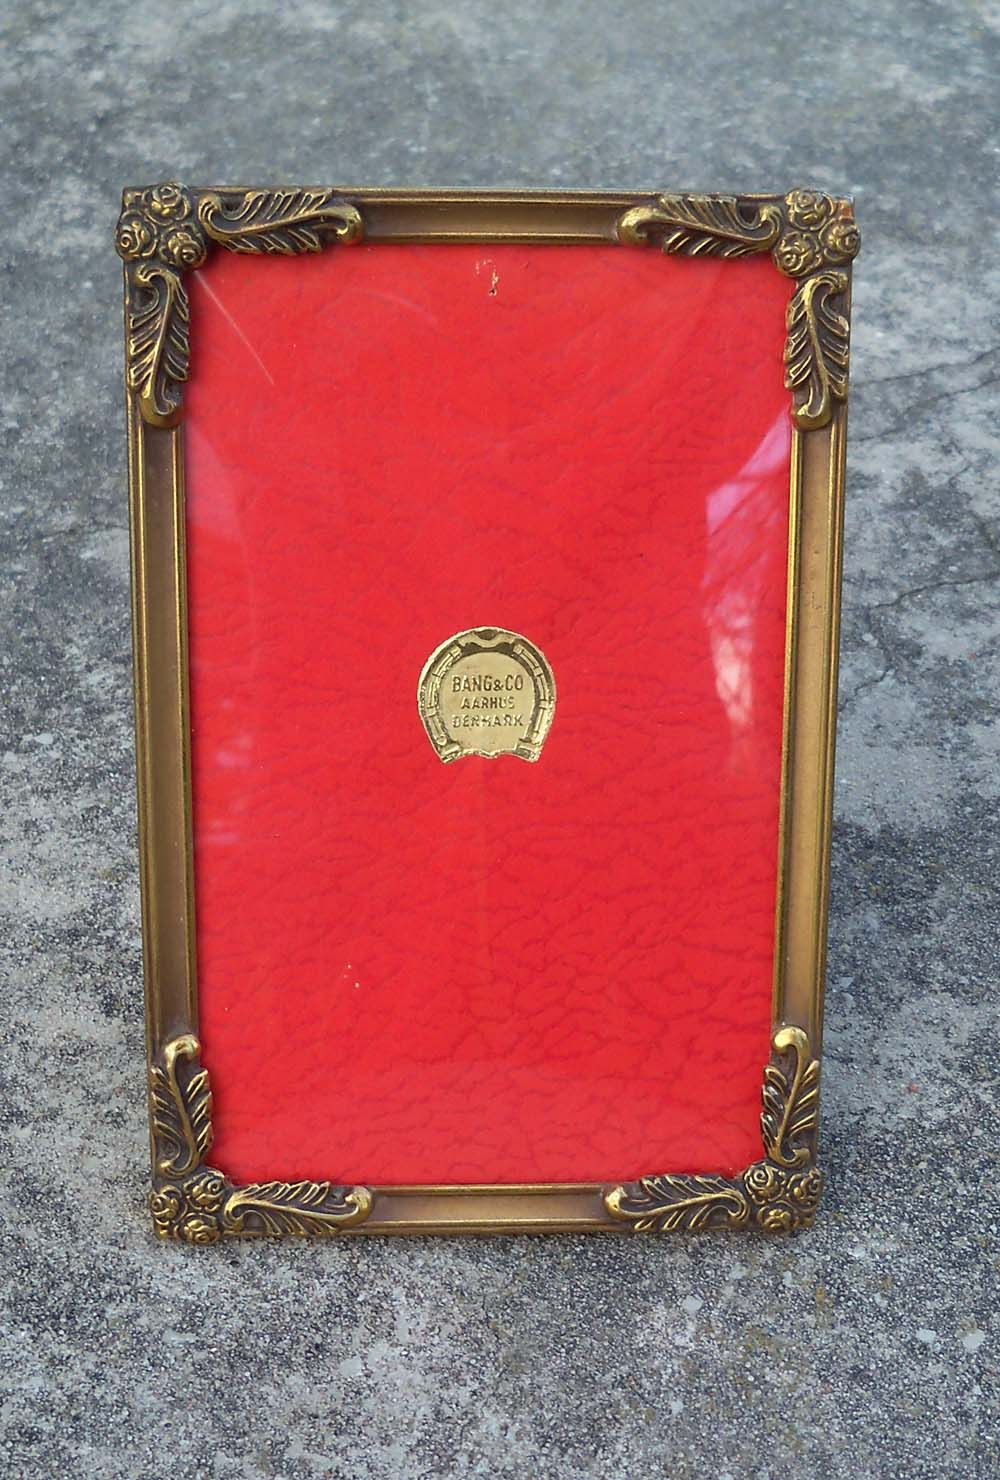 Reduced cute vintage brass bang co aarhus denmark picture aarhus denmark picture frame with convex glass by penaroyal jeuxipadfo Images